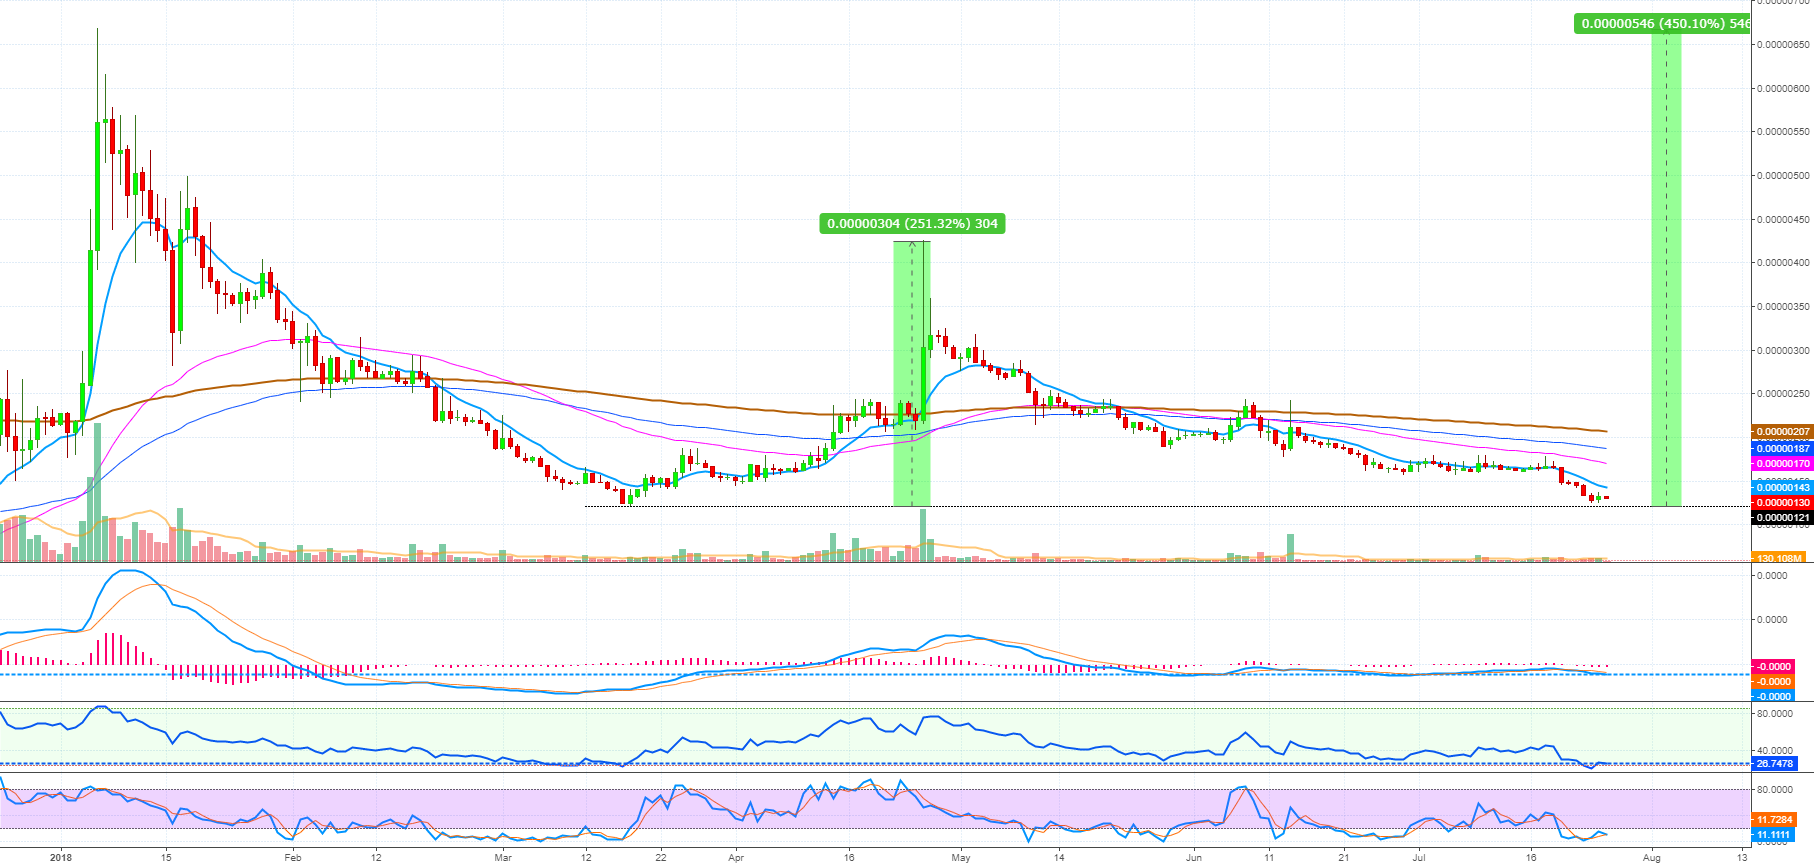 Siacoin (SC) Double Bottom? (Huge Opportunity Forming)